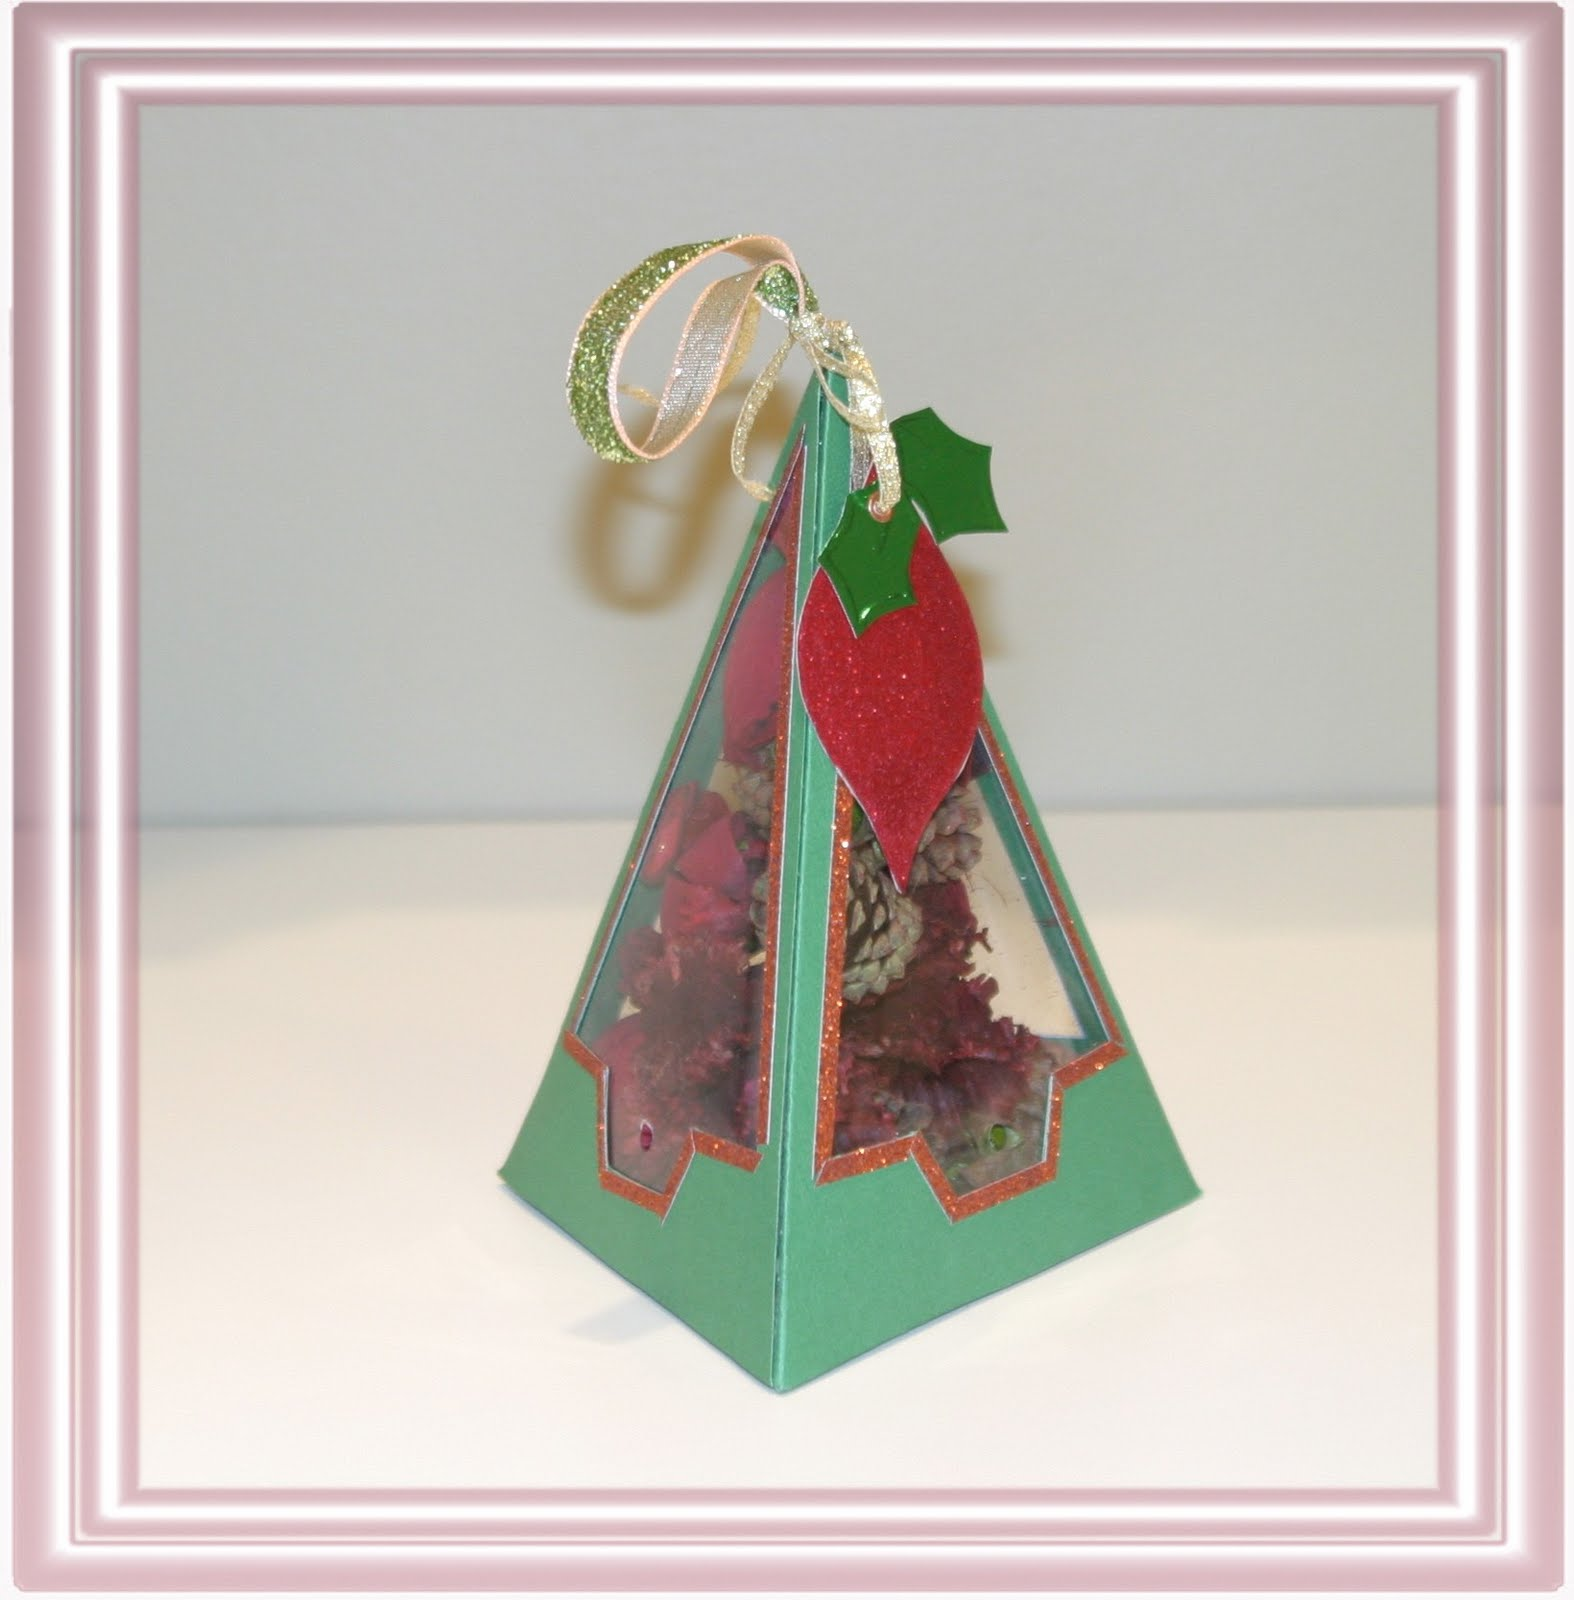 Christmas Gift Box Template.Triangular Gift Box Template Jinkys Crafts